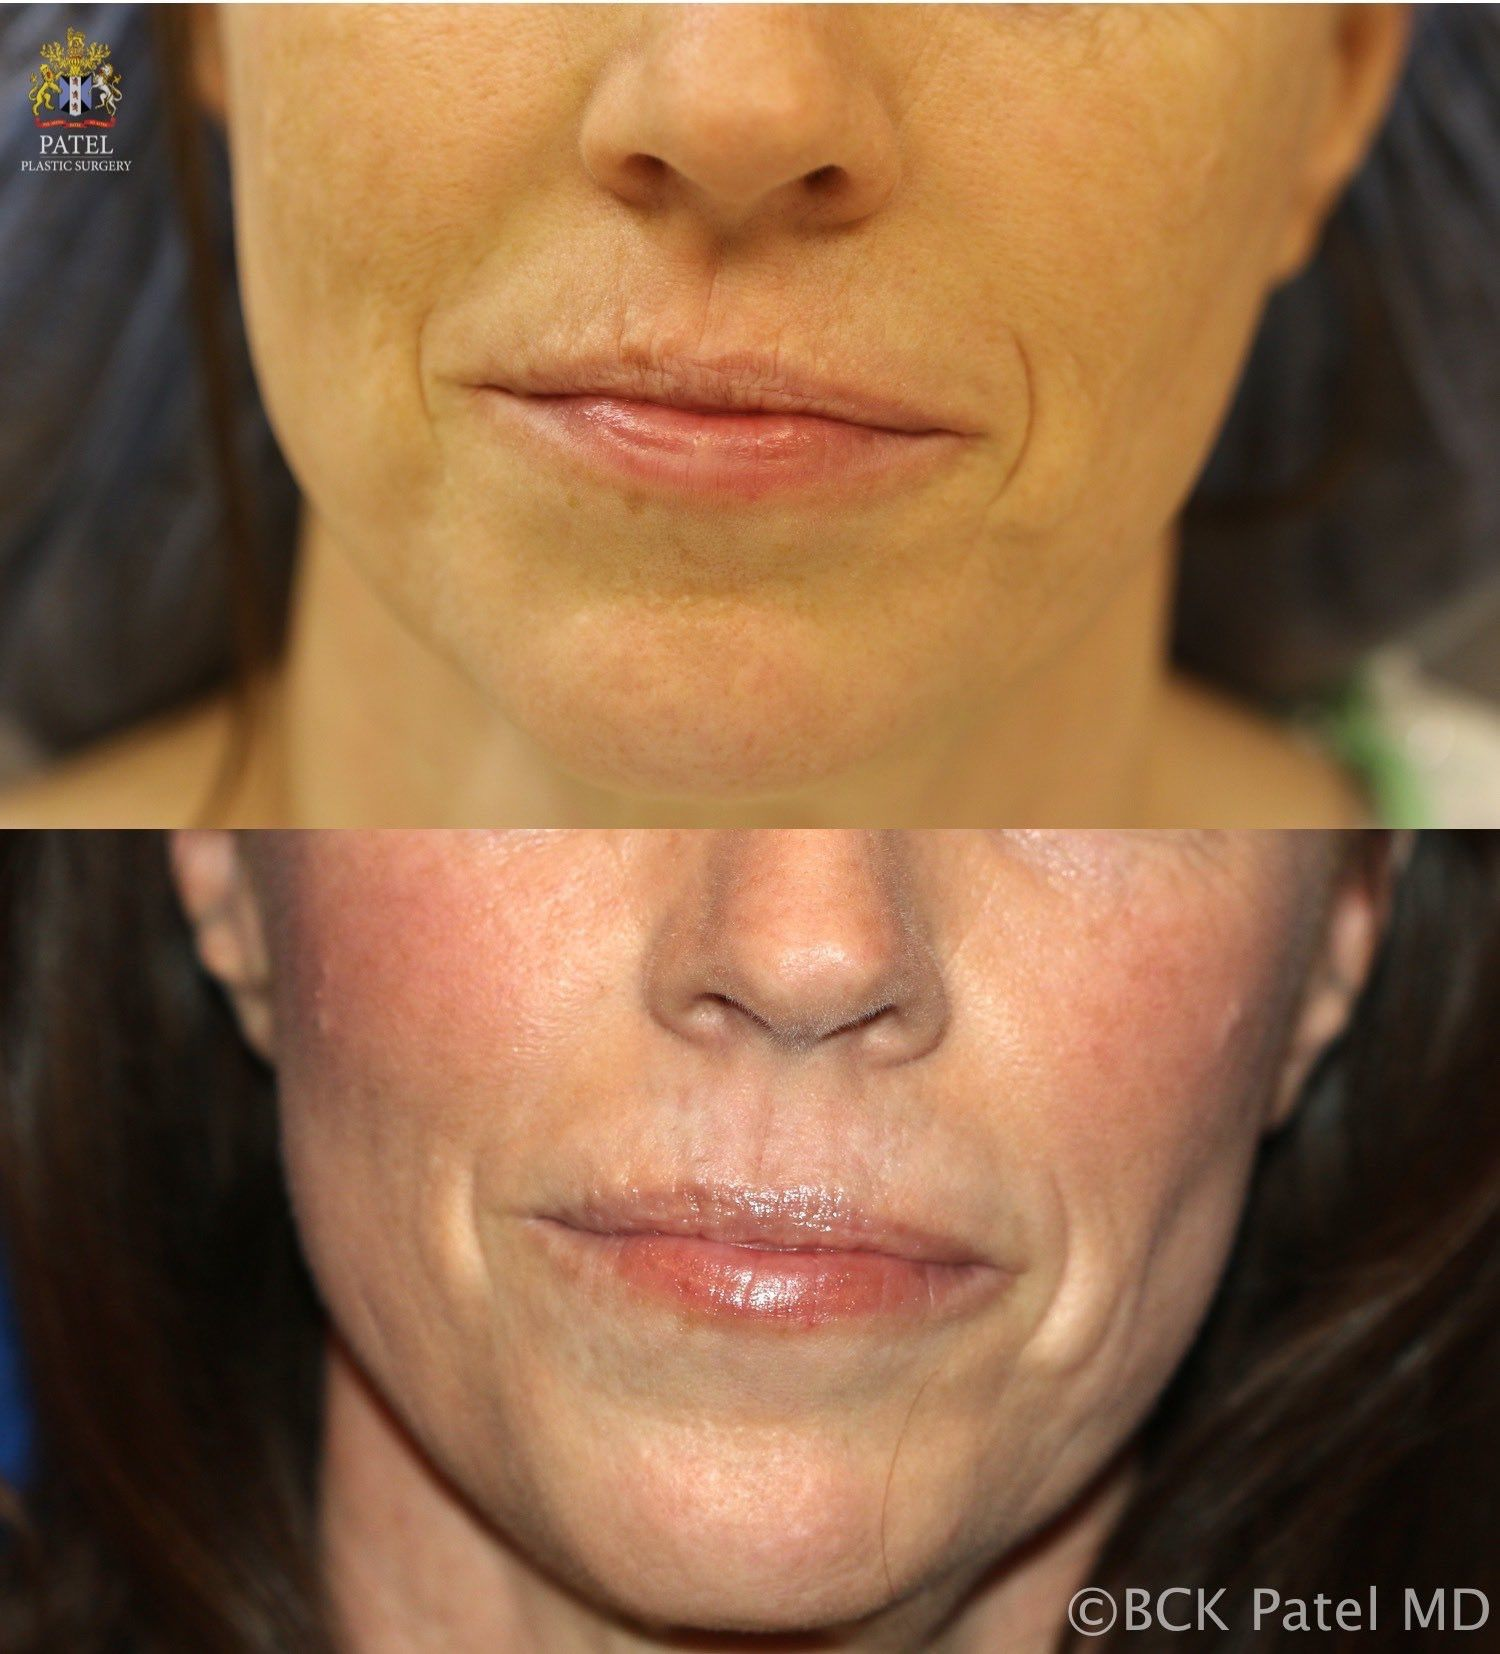 englishsurgeon.com. Nice results with improvement of lip andmouth smoker's lines with the use of the CO2 laser by Dr. BCK Patel MD, FRCS, Salt Lake City, London, St George